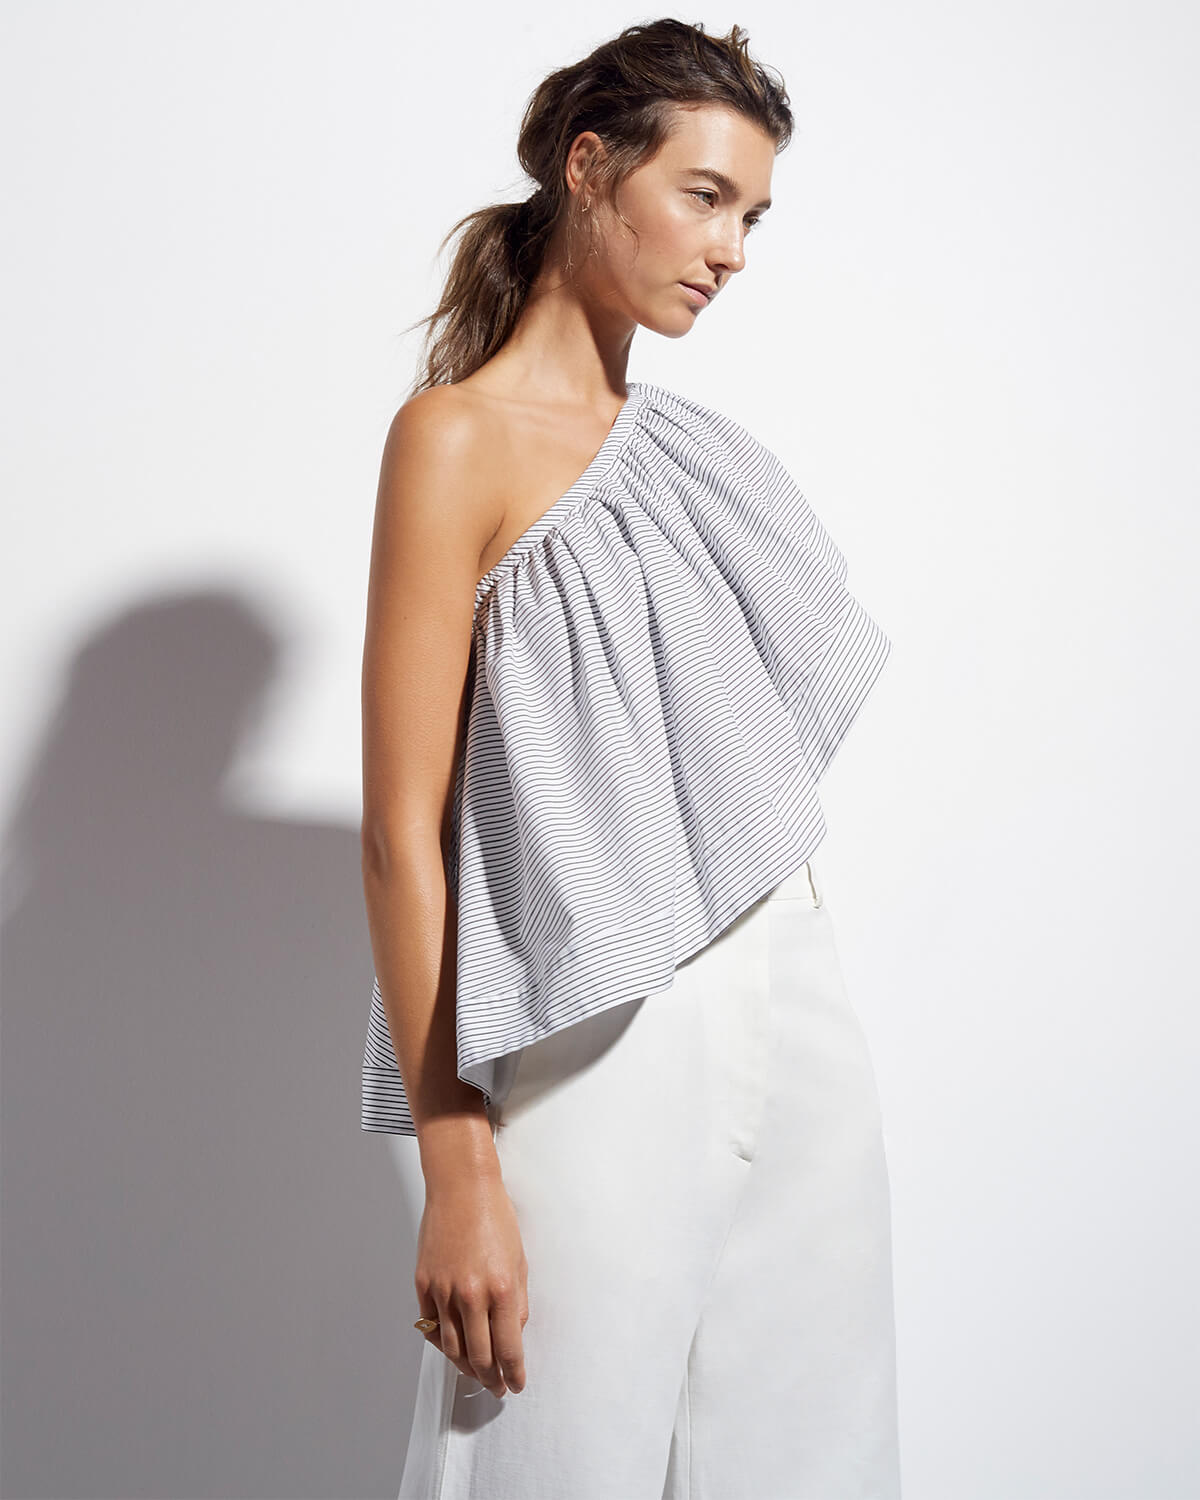 goop x Rosie Assoulin One-Shoulder Top